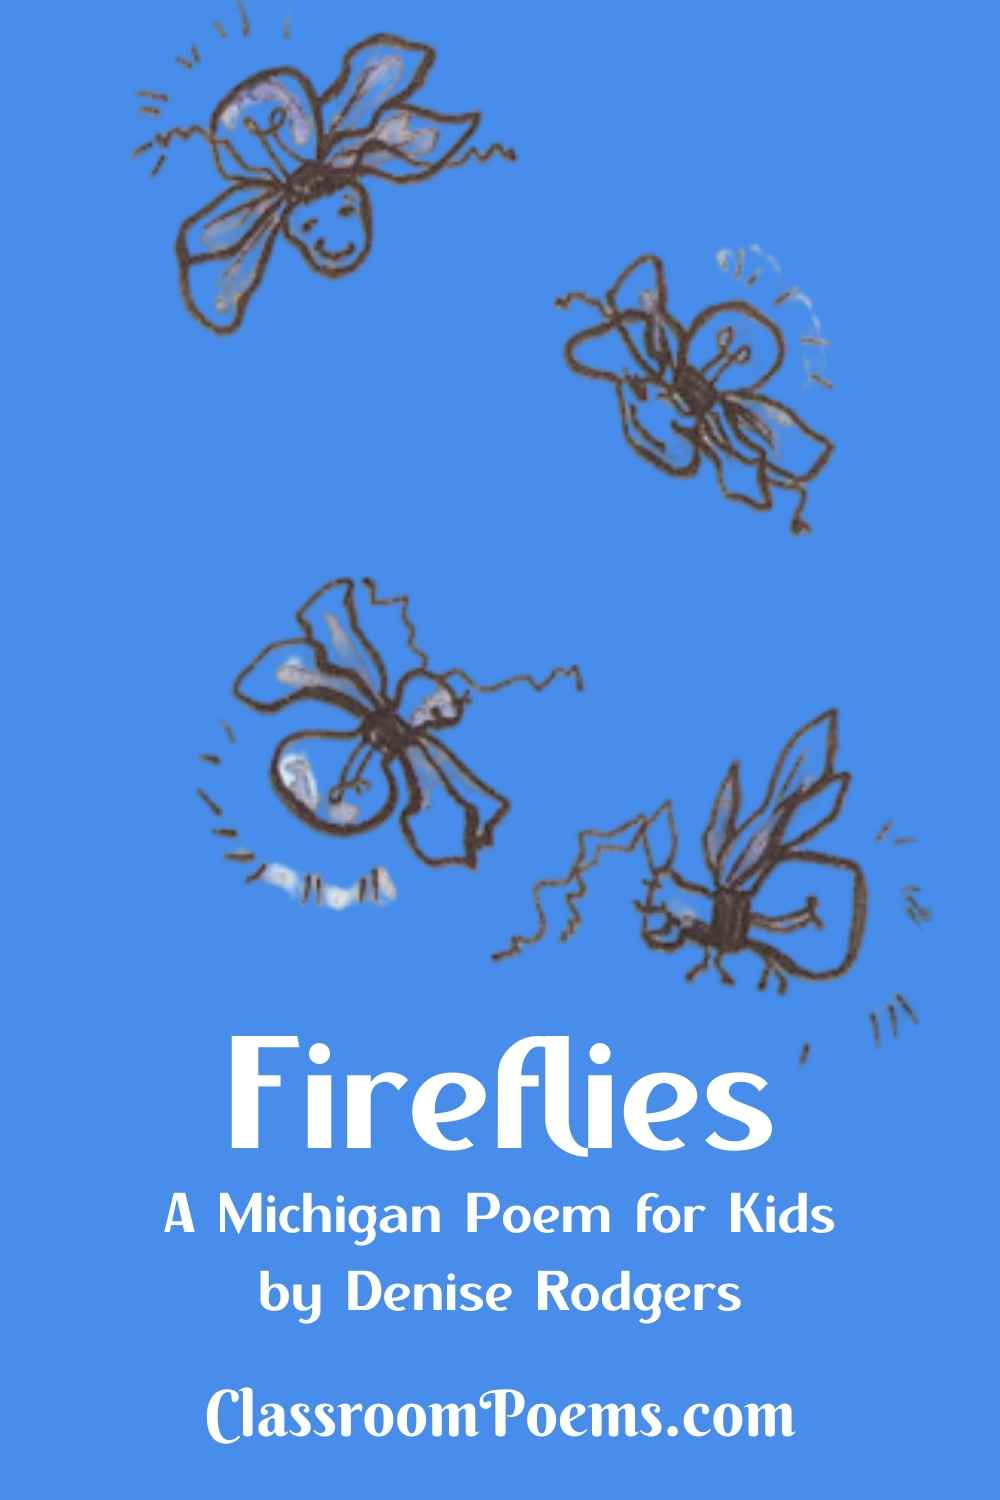 Fireflies. FIREFLY poem by Denise Rodgers by Denise Rodgers on ClassroomPoems.com.